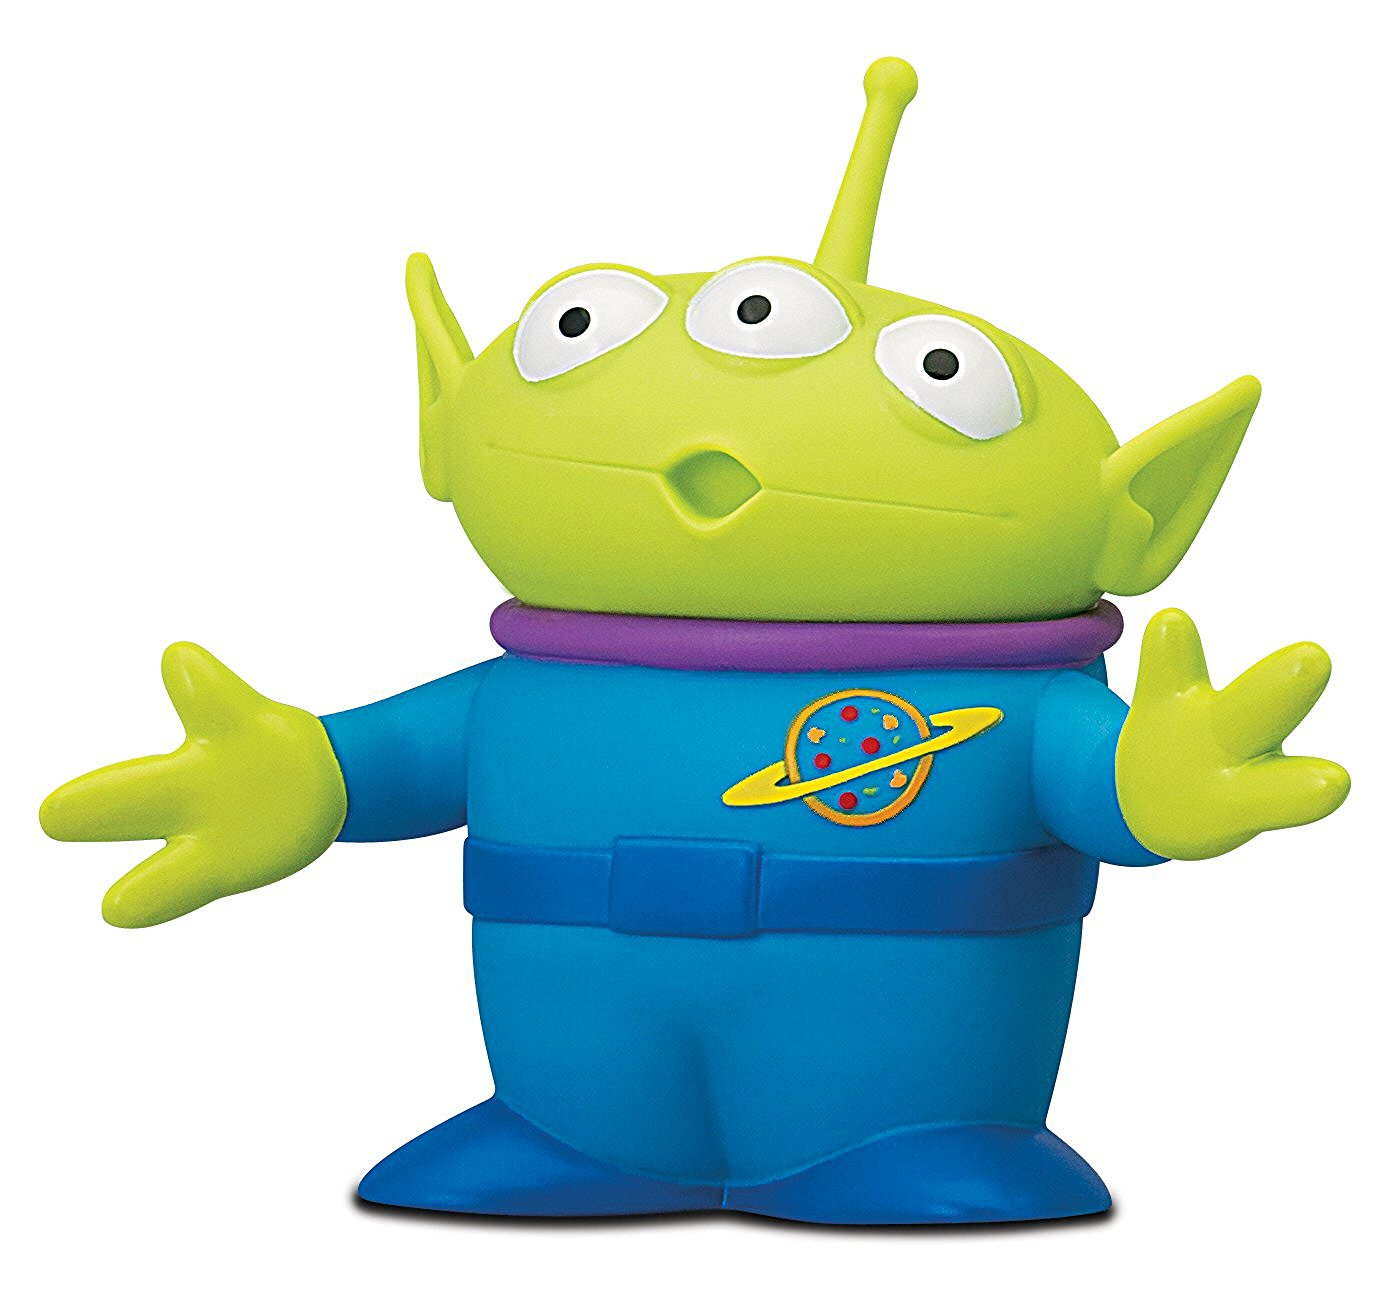 The Toy story aliens